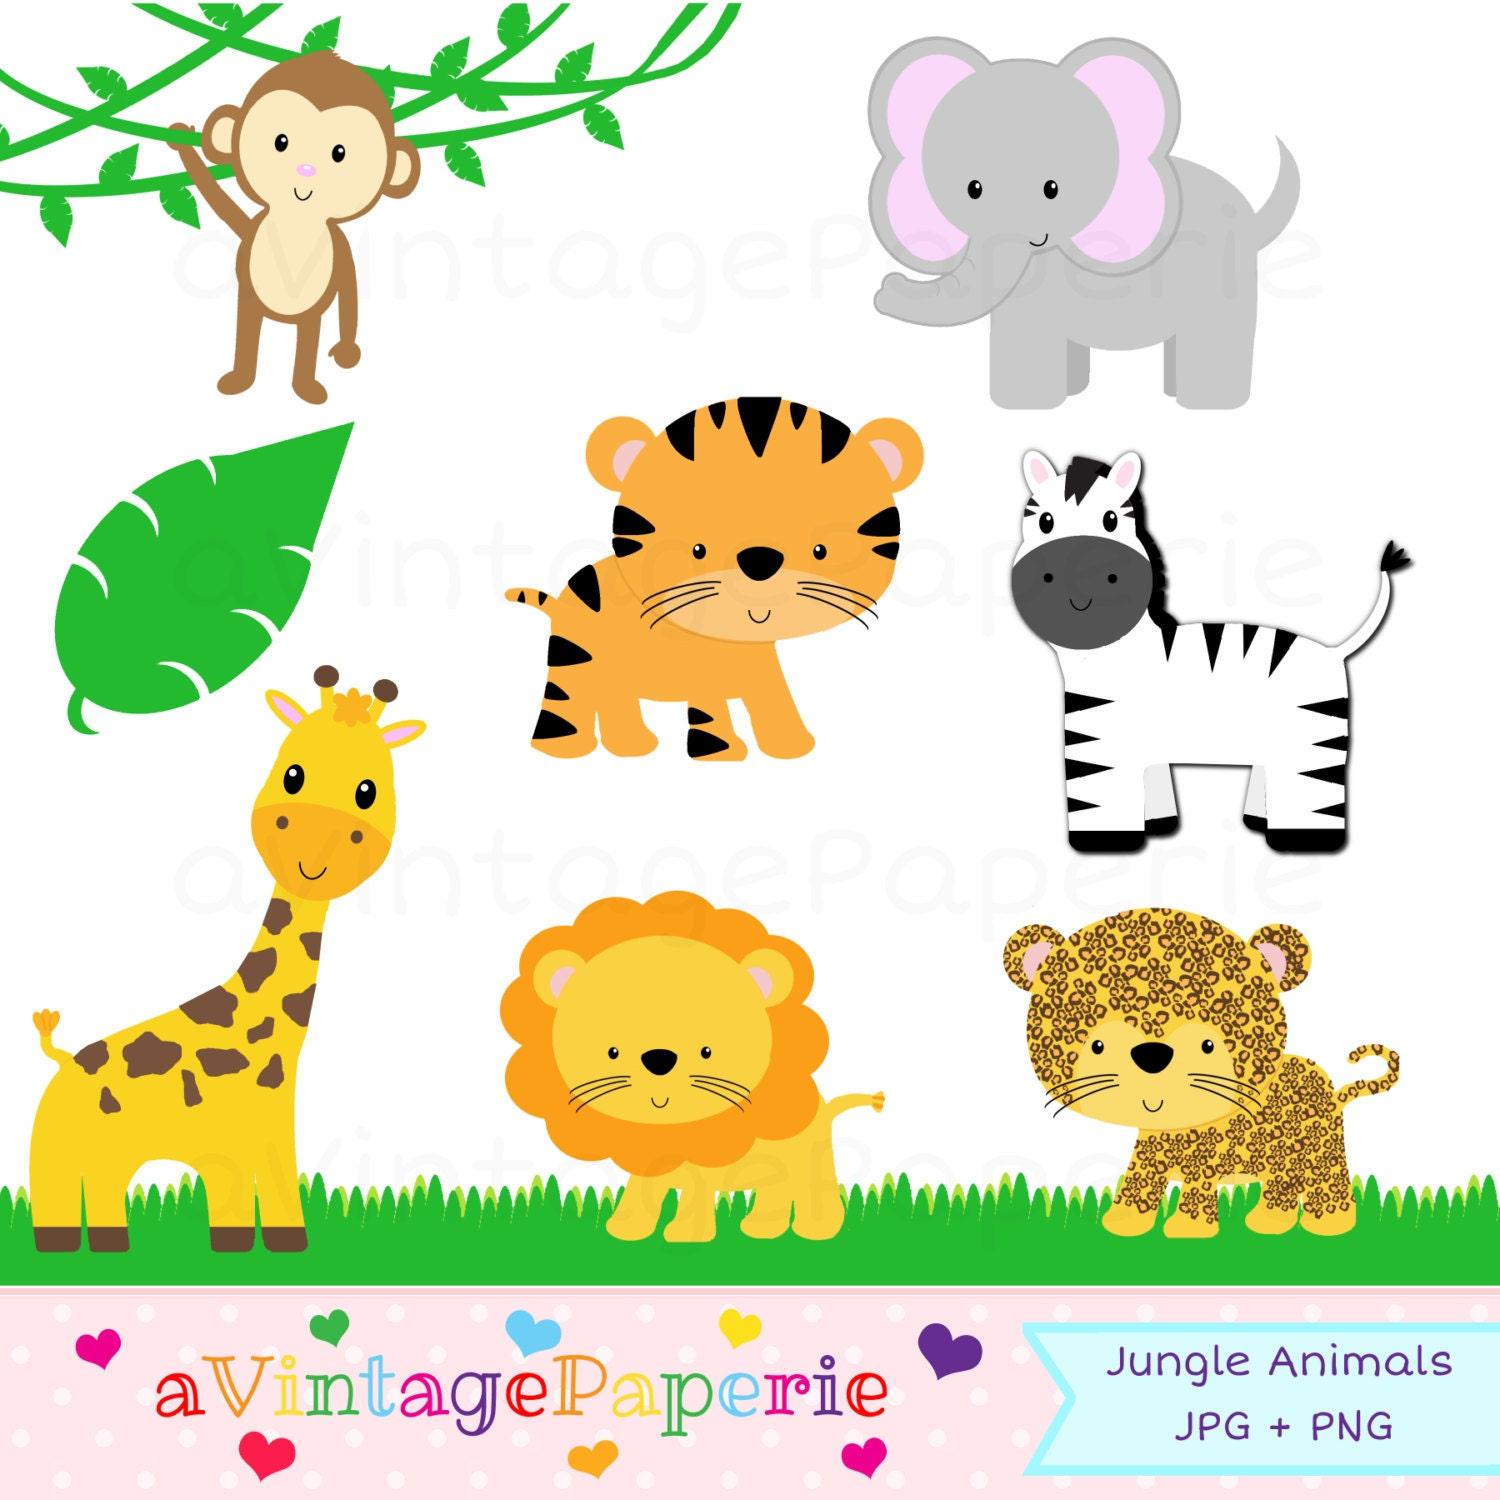 Jungle animal clipart - Jungle Animal Clip Art - Zoo ...